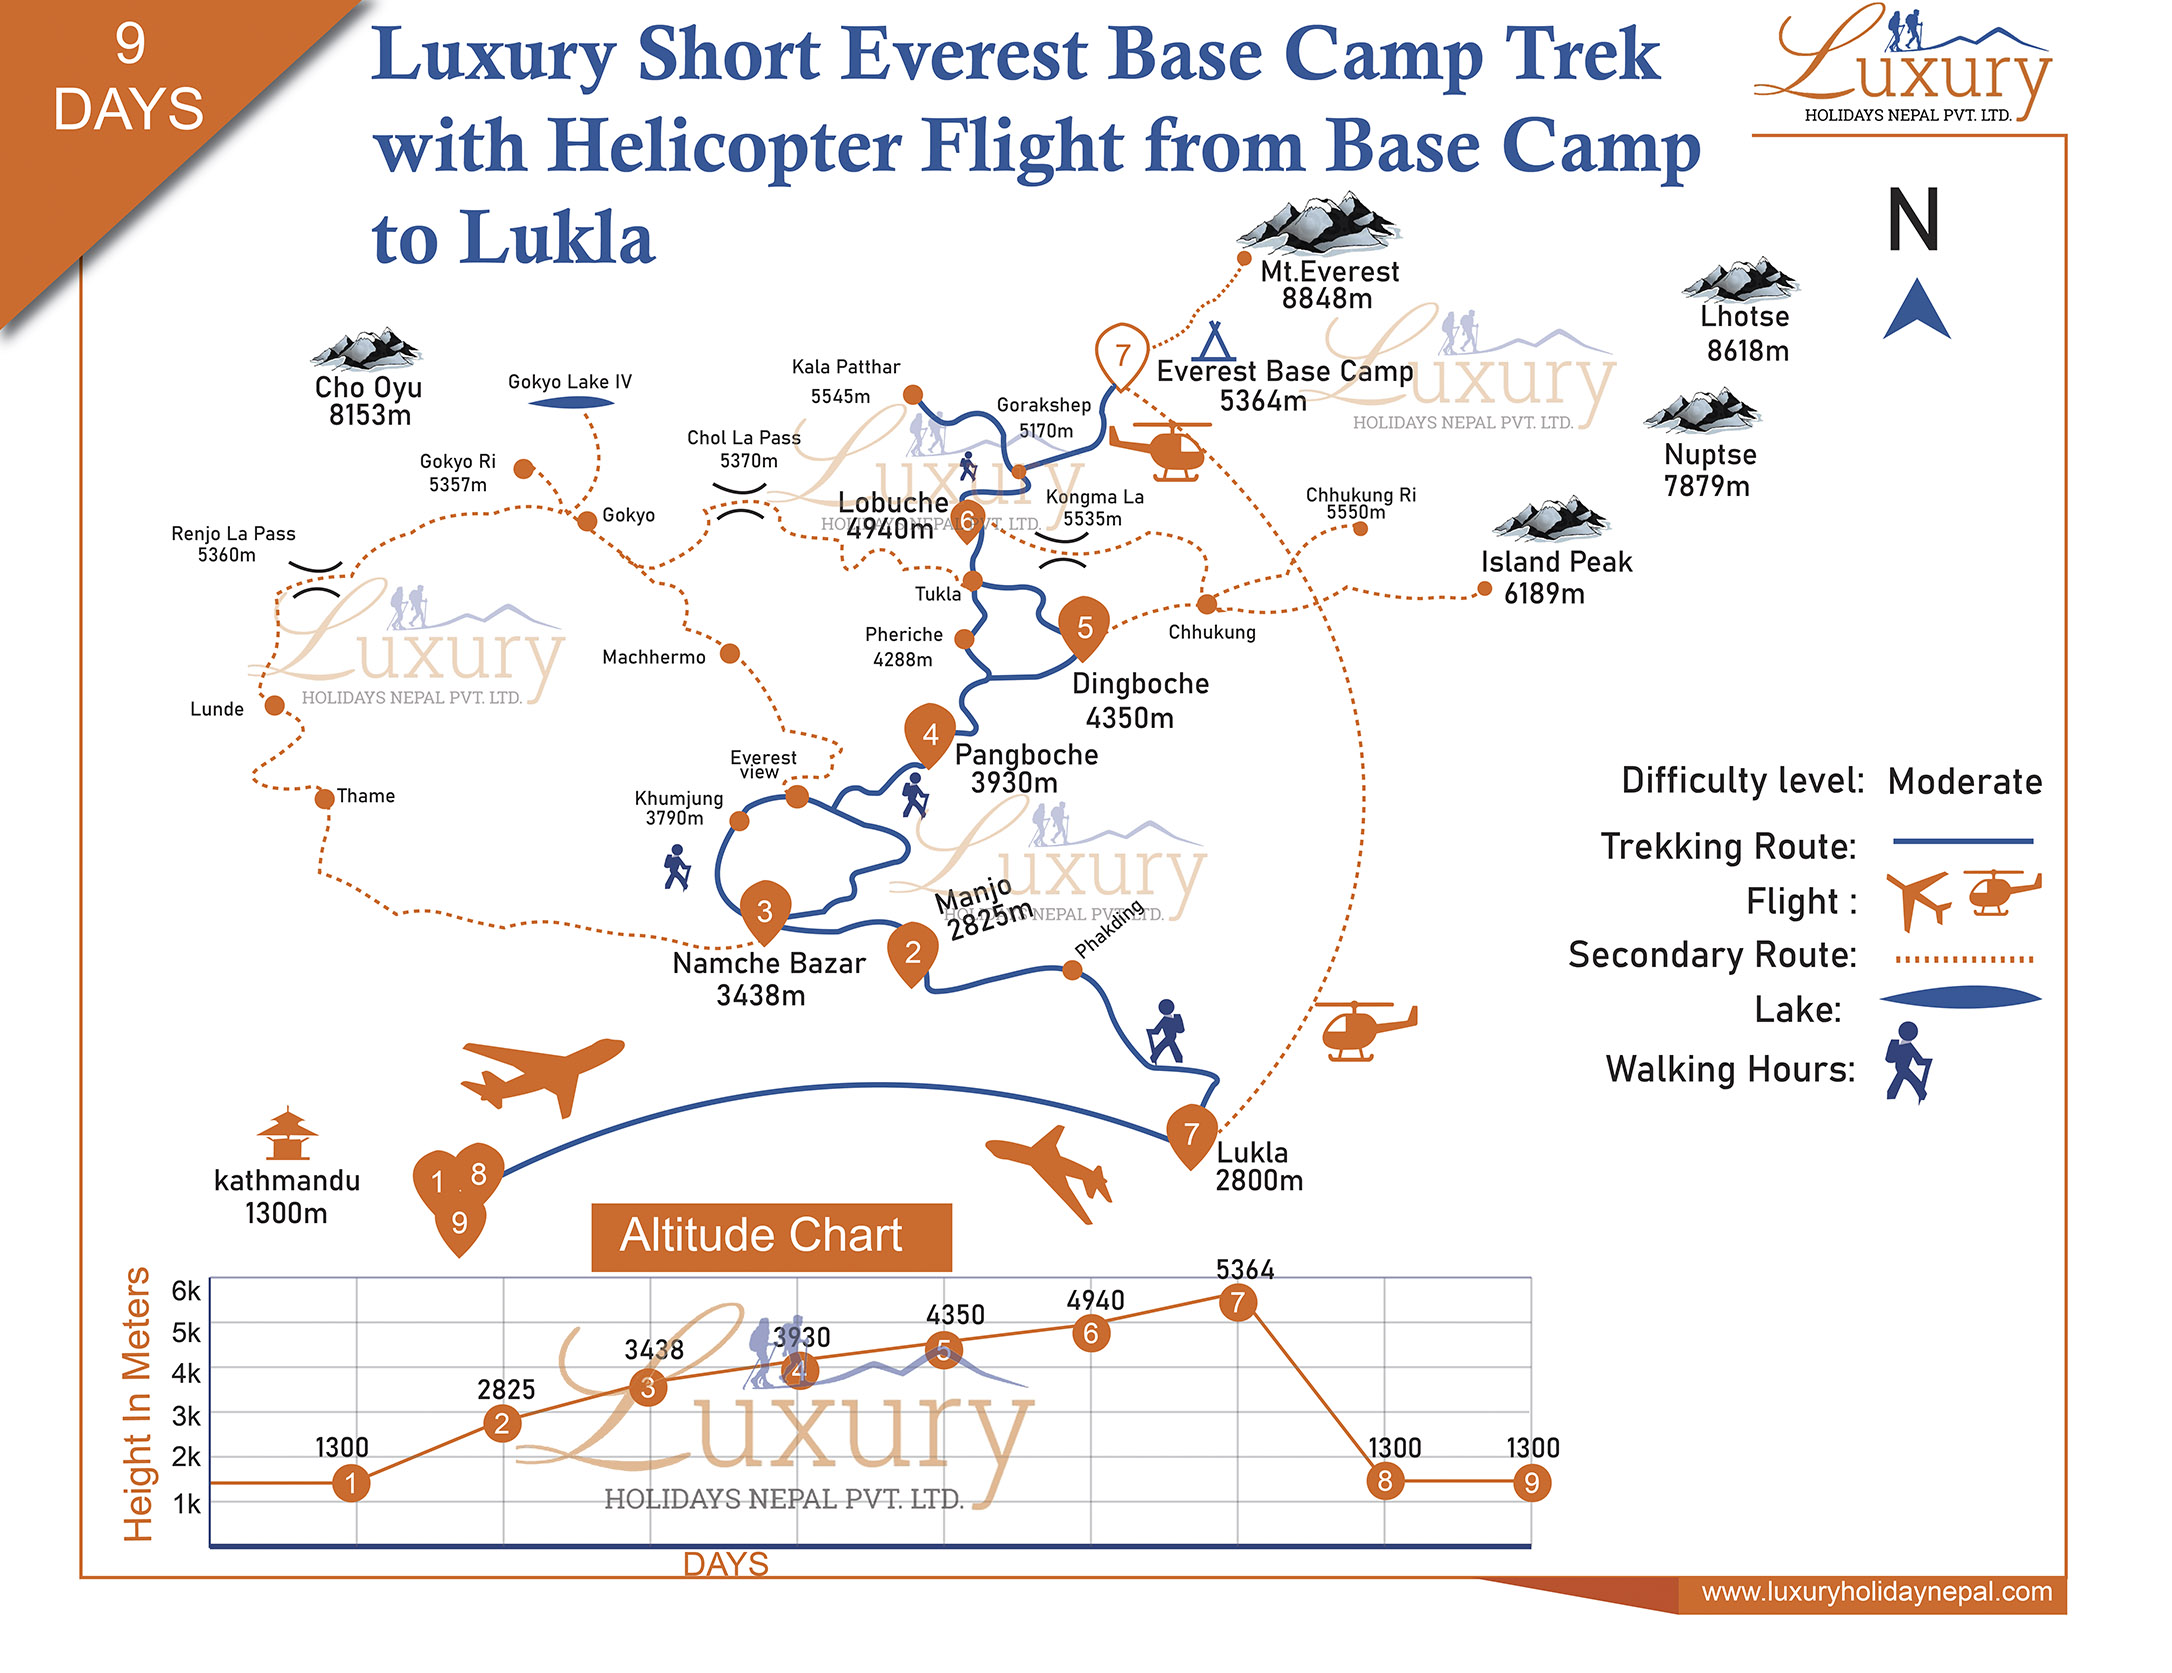 Luxury short Everest Base Camp Trek with Helicopter flight from Base Camp to Lukla Trip Map